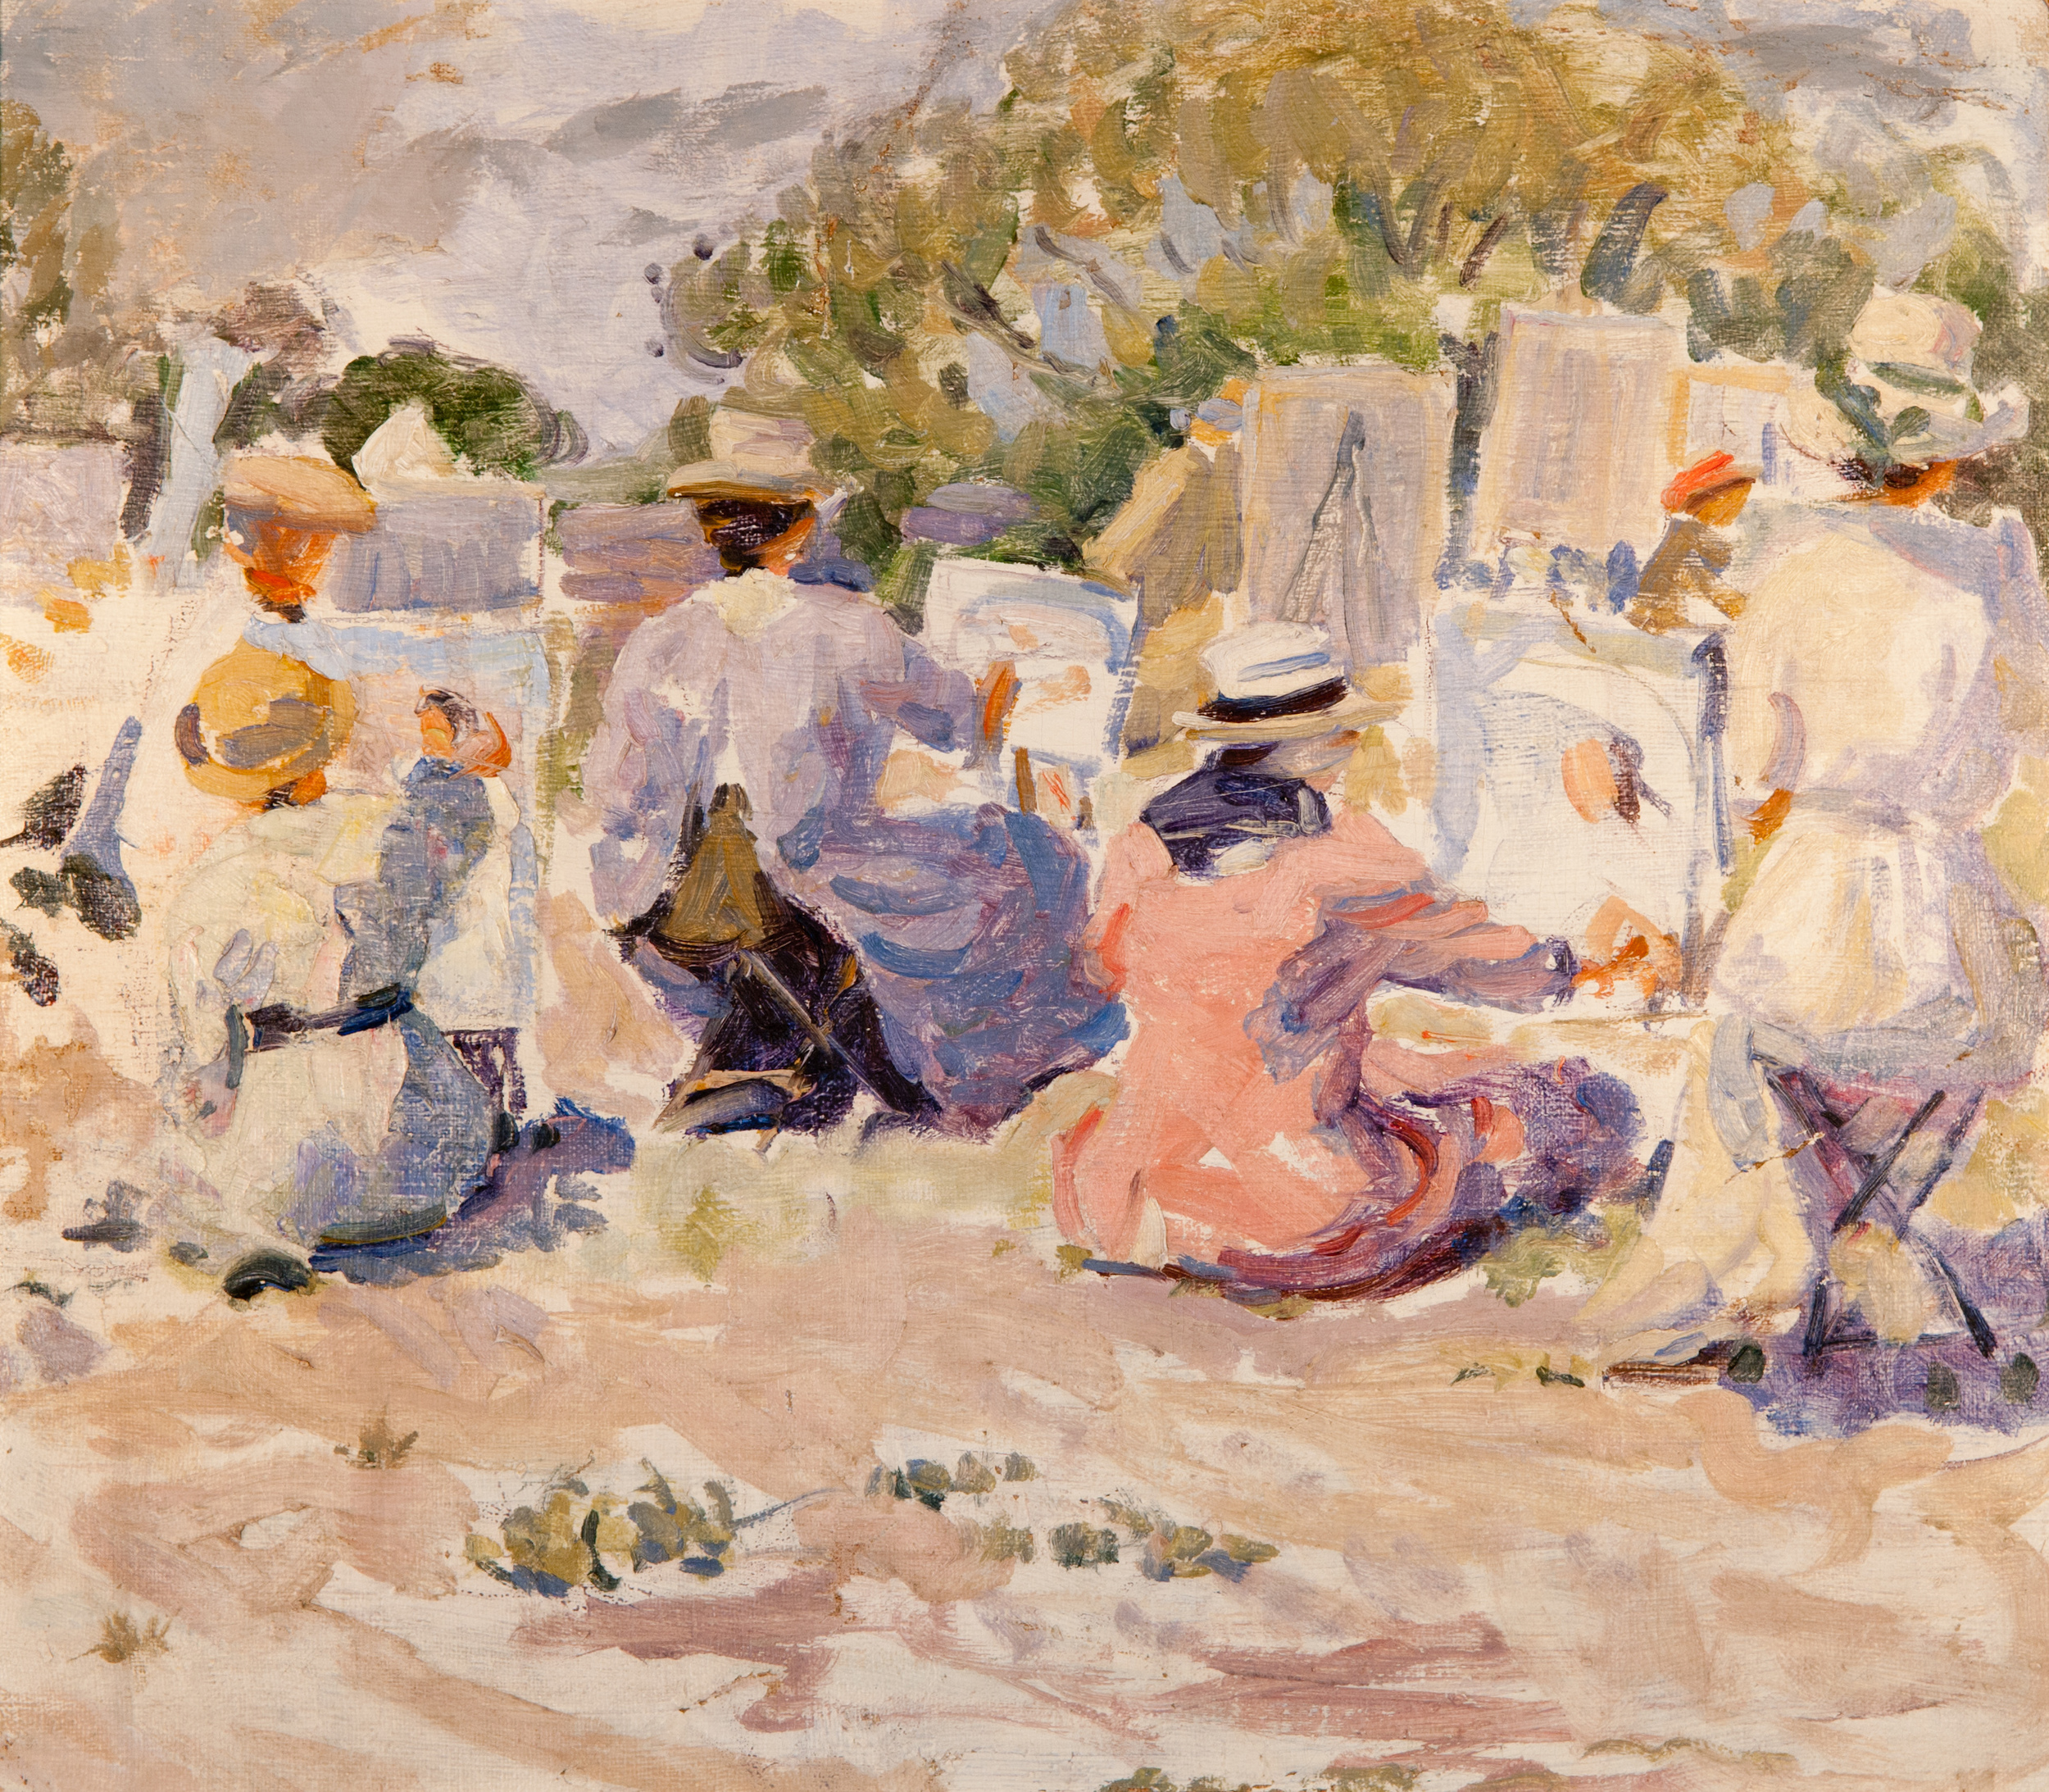 Painting Class (Oil Painting) by Edith Lake Wilkinson